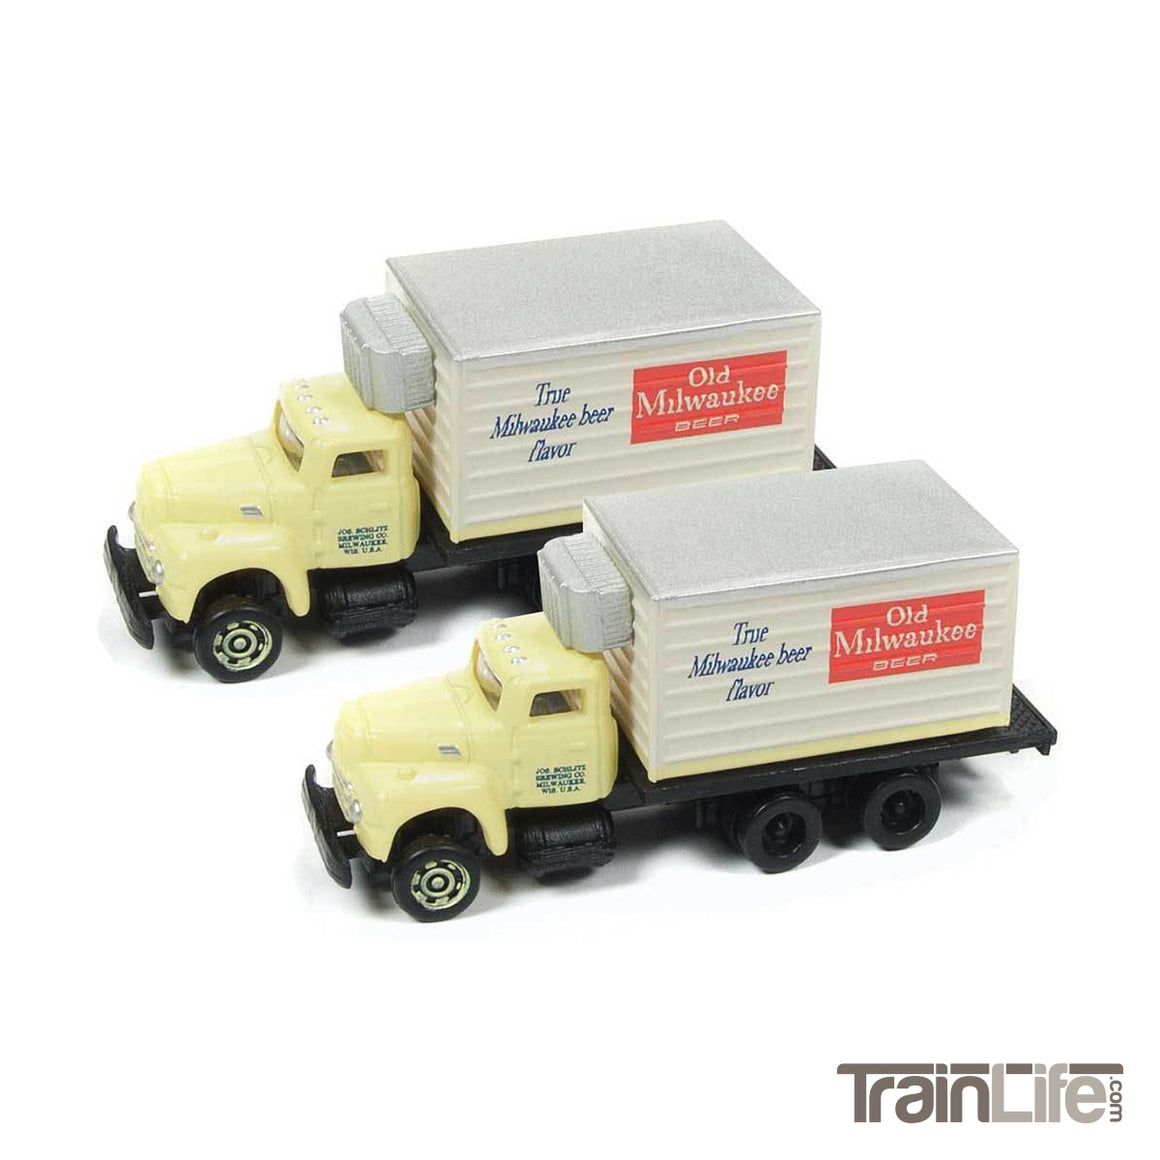 N Scale: IH R-190 Box Delivery Truck - Old Milwaukee Beer - 2 Pack